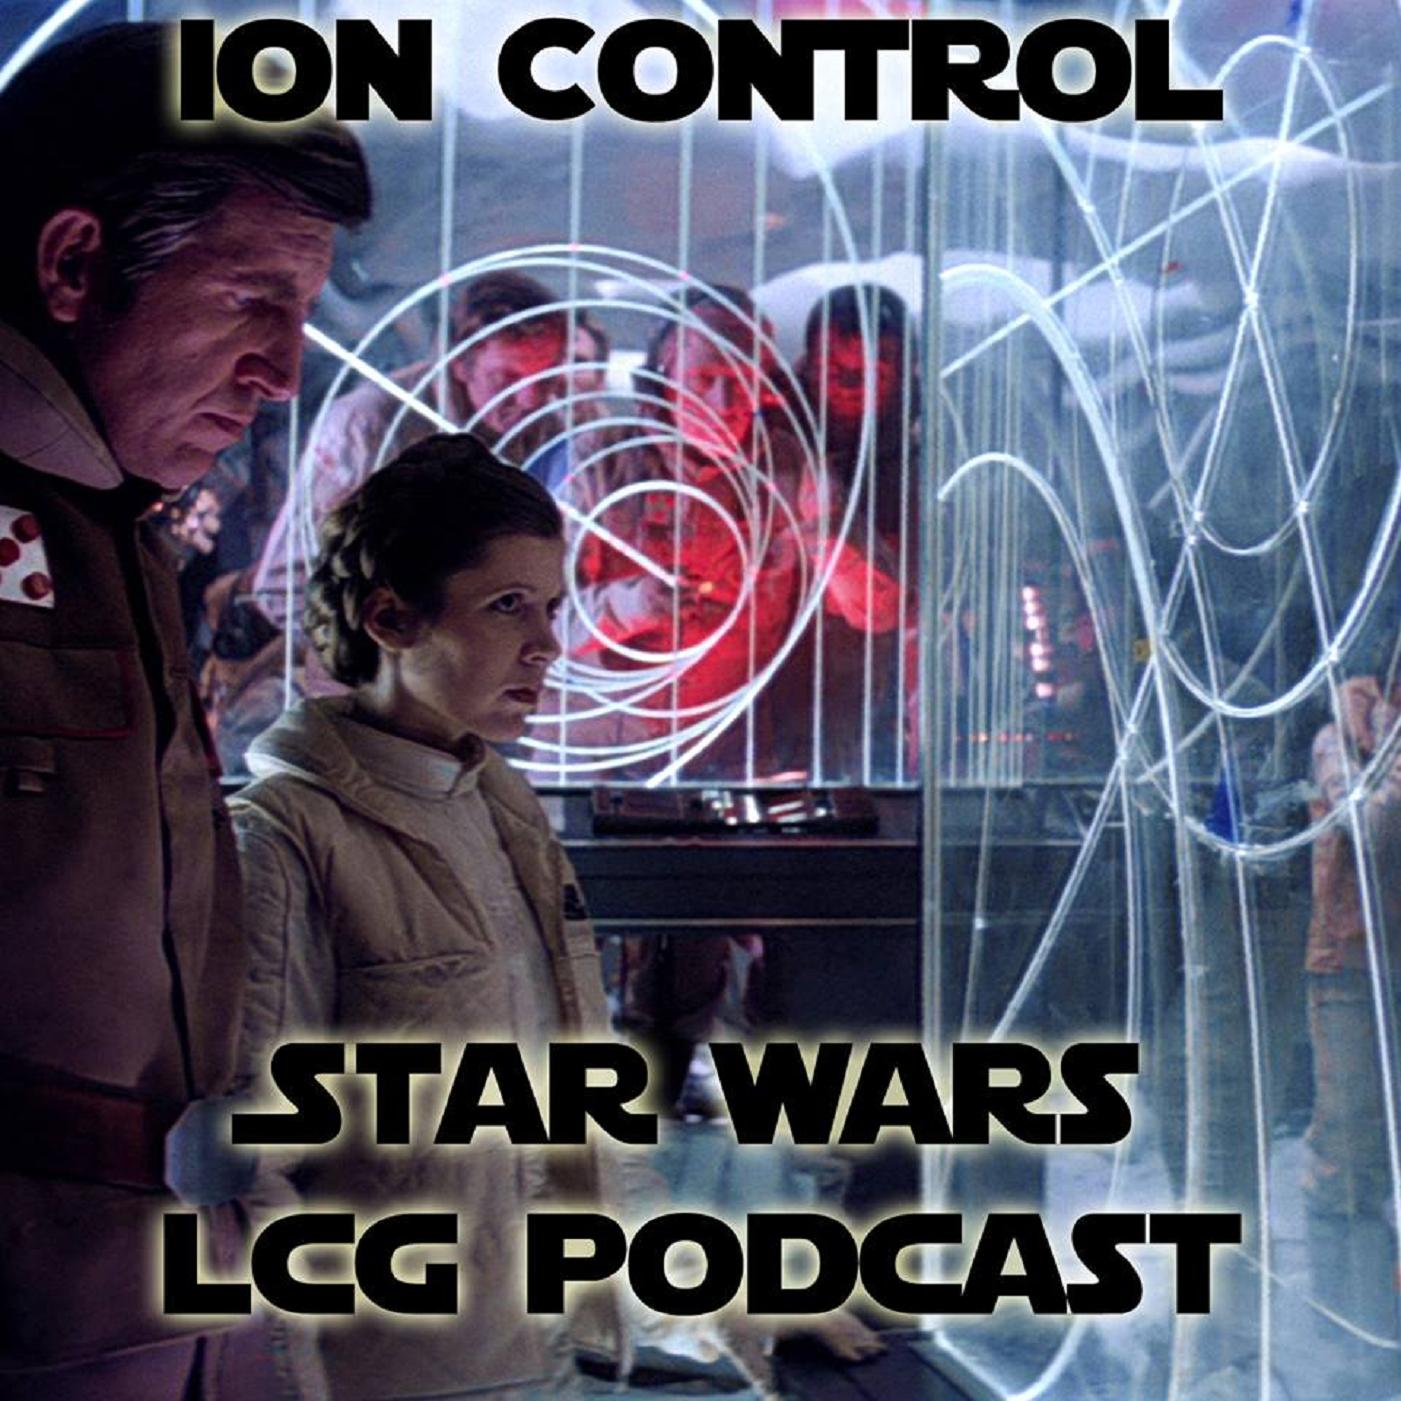 Ion Control Podcast